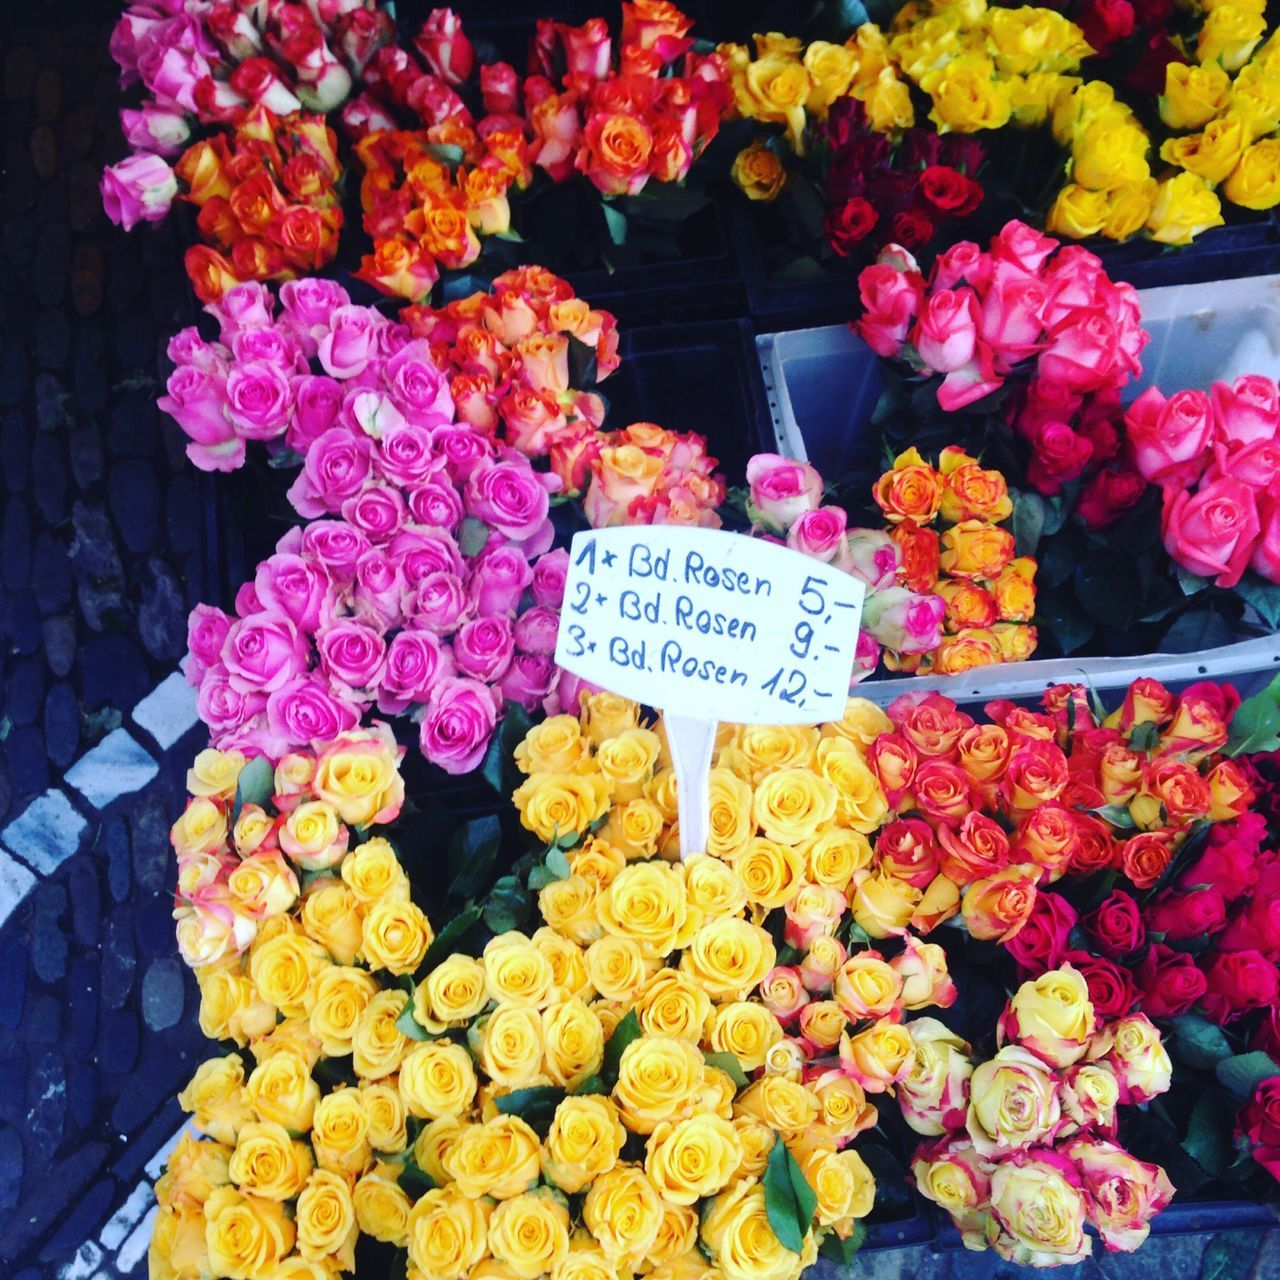 Flower Freshness Variation Abundance Choice Multi Colored Vibrant Color Price Tag Retail  Flower Shop For Sale Bouquet Market Flower Market Market Stall Gift No People Fragility Beauty In Nature Close-up